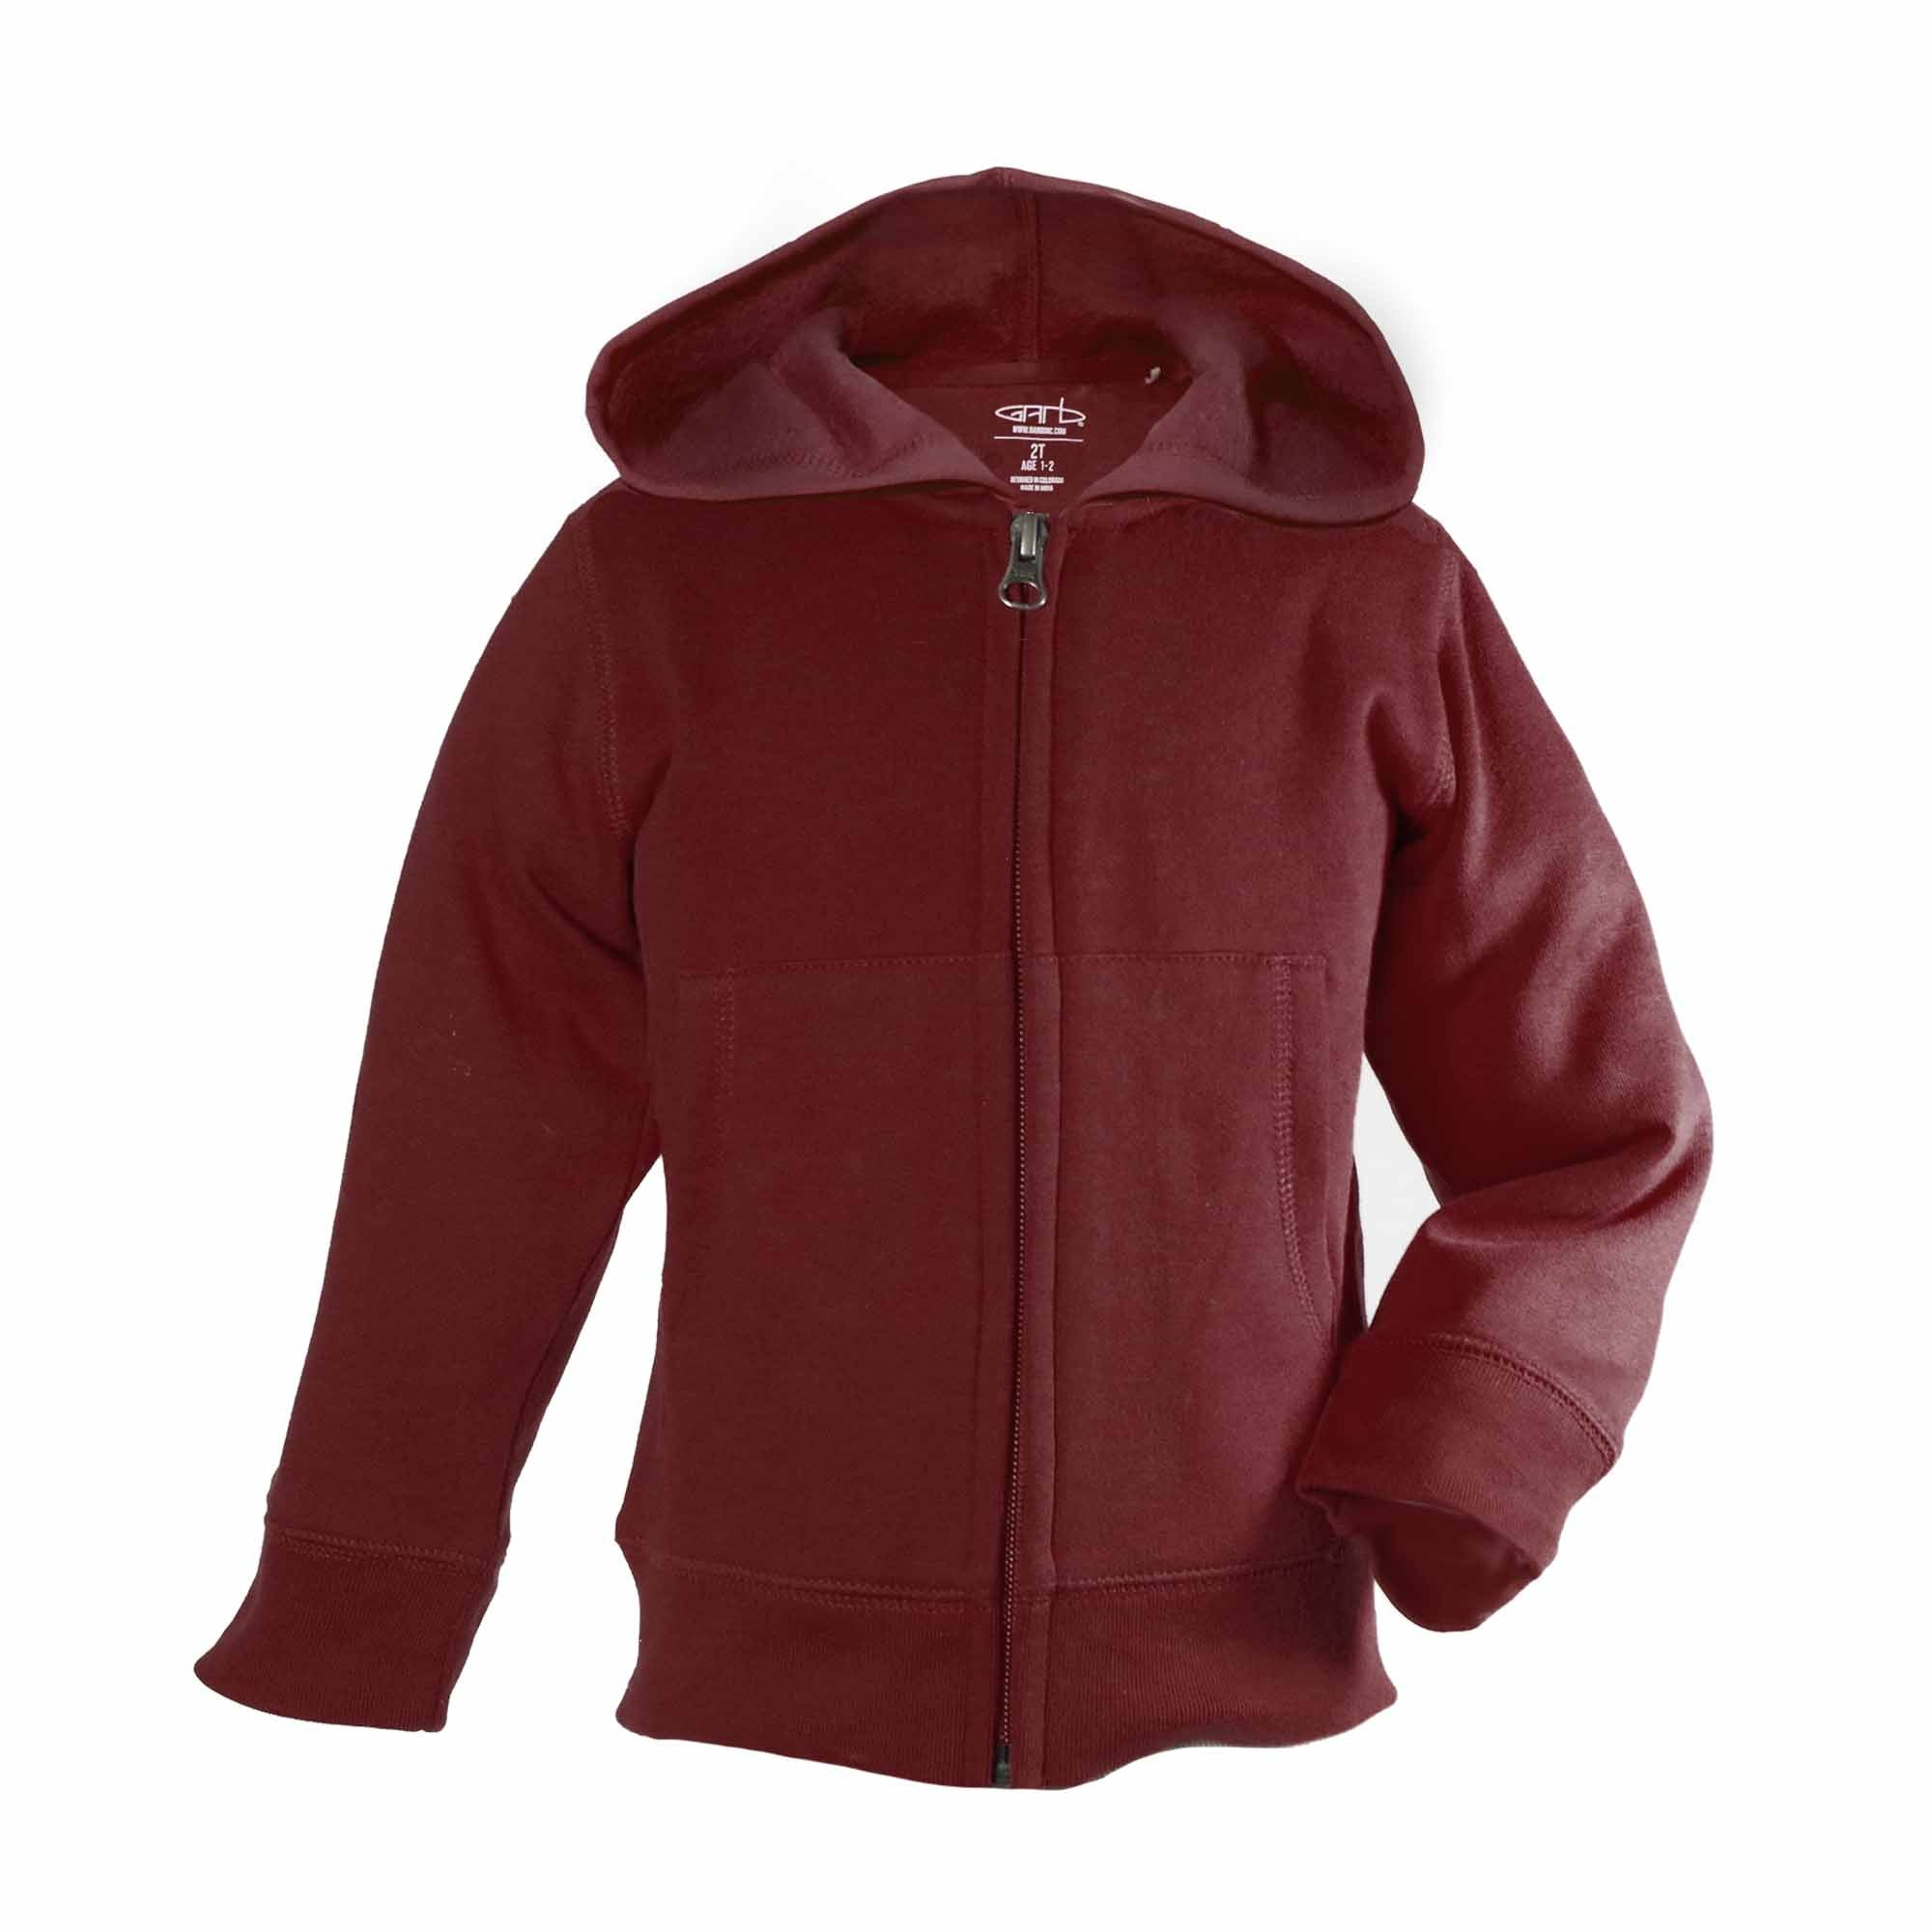 Henry - Unisex Toddler & Youth Full Zip Hoodie